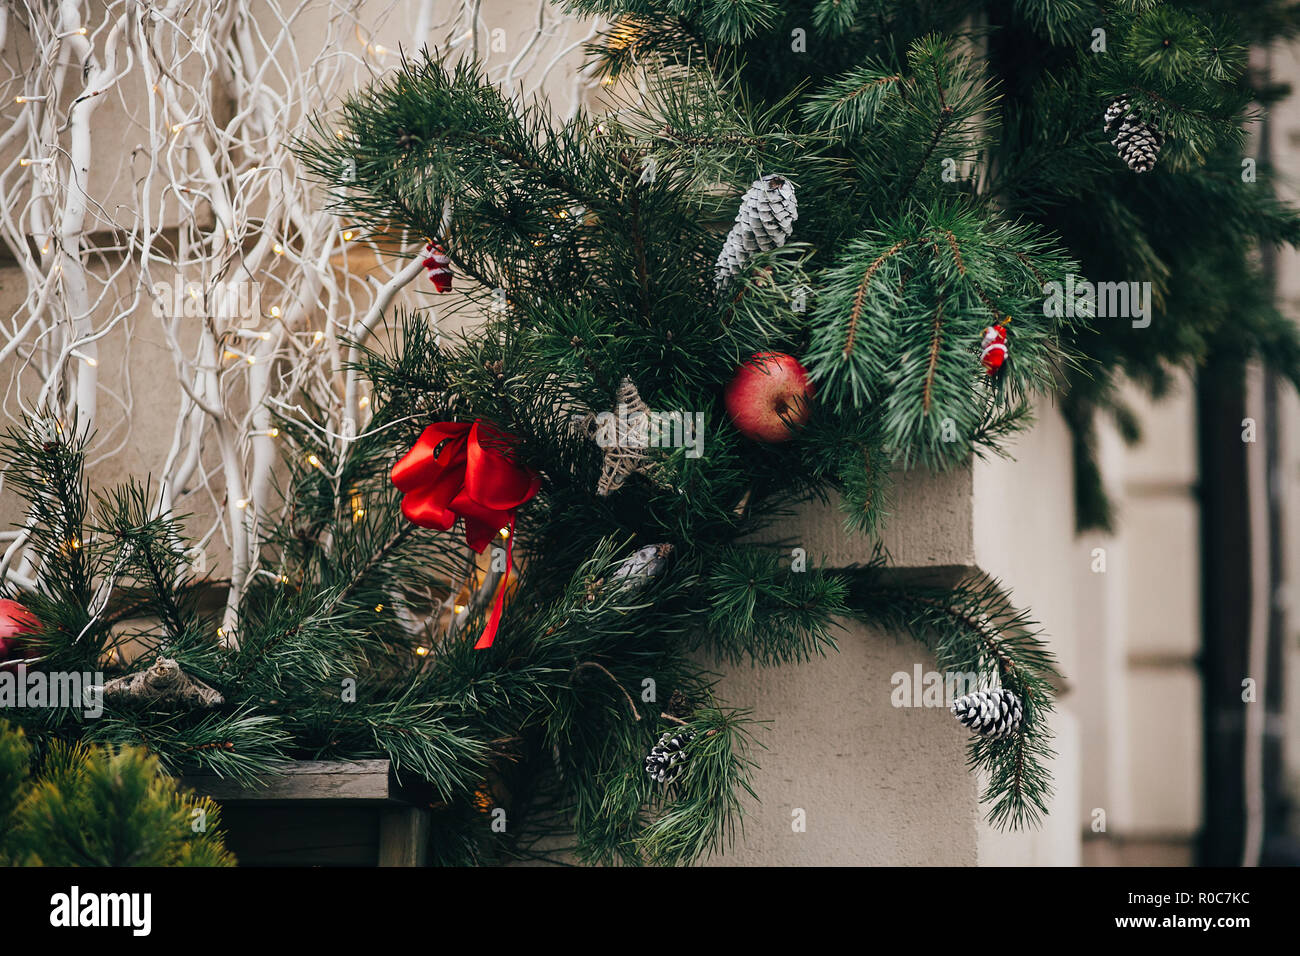 Stylish christmas decorations, green christmas wreath with red bows and ornaments, pine cones, stars, white branches in european city street. Festive  - Stock Image